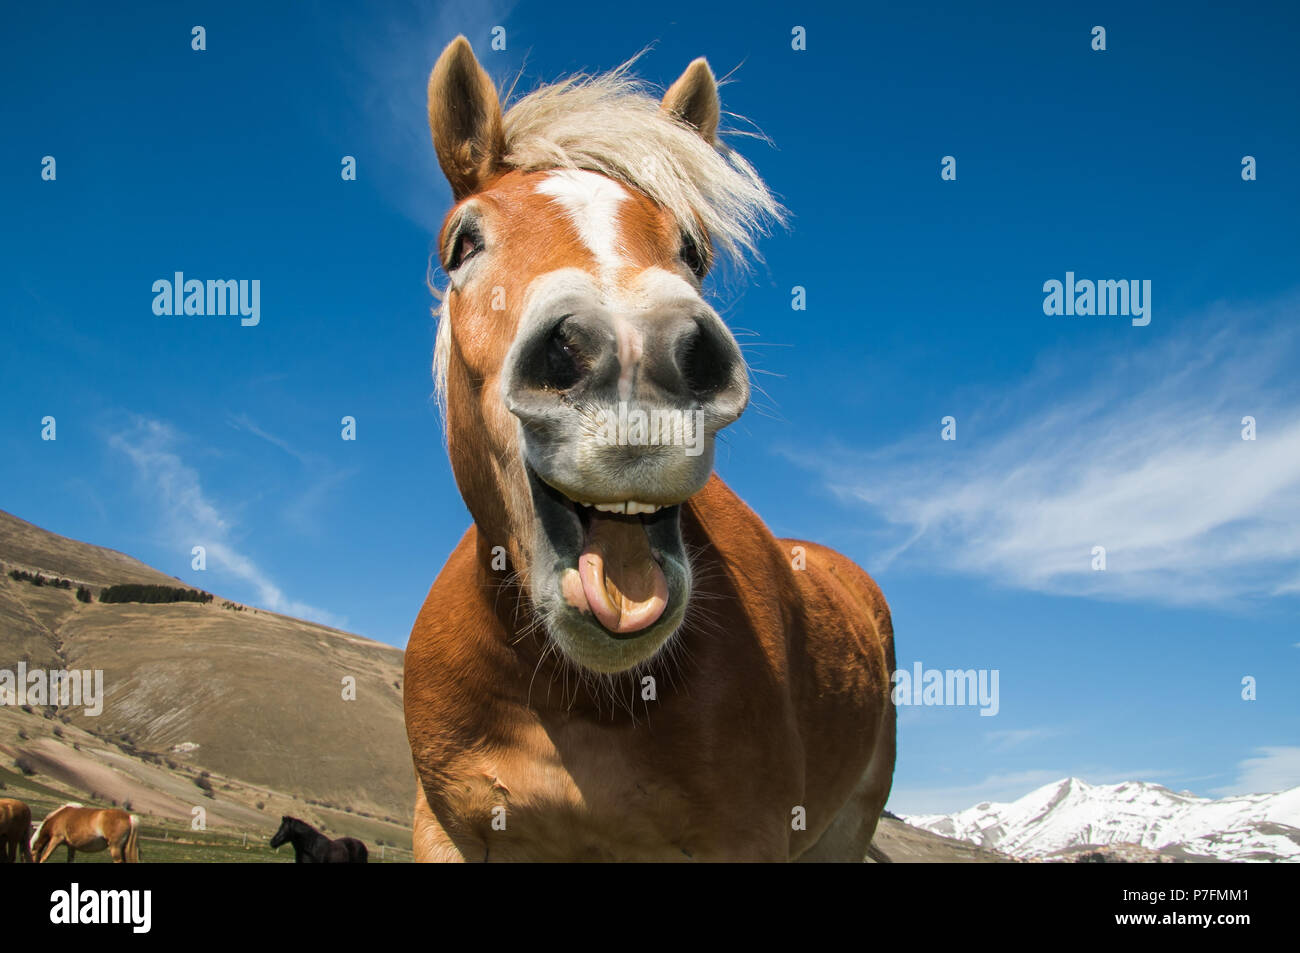 Funny Portrait Of Smiling Horse Against The Blue Sky Stock Photo Alamy